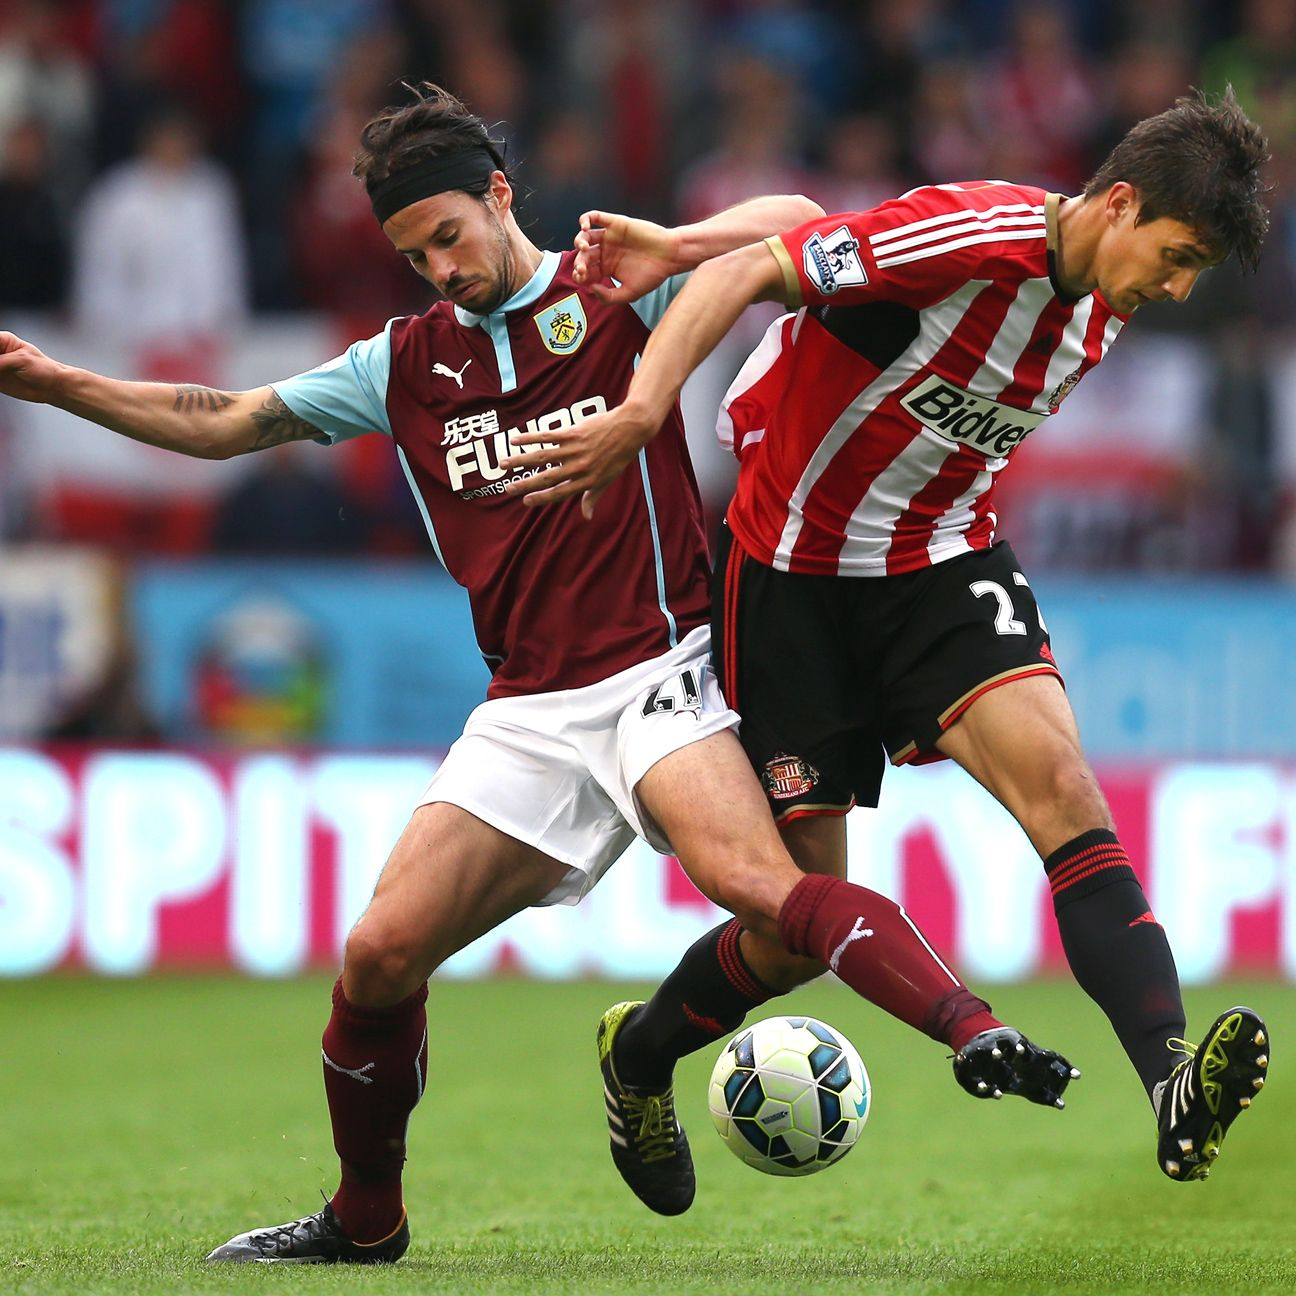 It was tough going all match long for Santiago Vergini and Sunderland, who could only muster a point at Turf Moor.